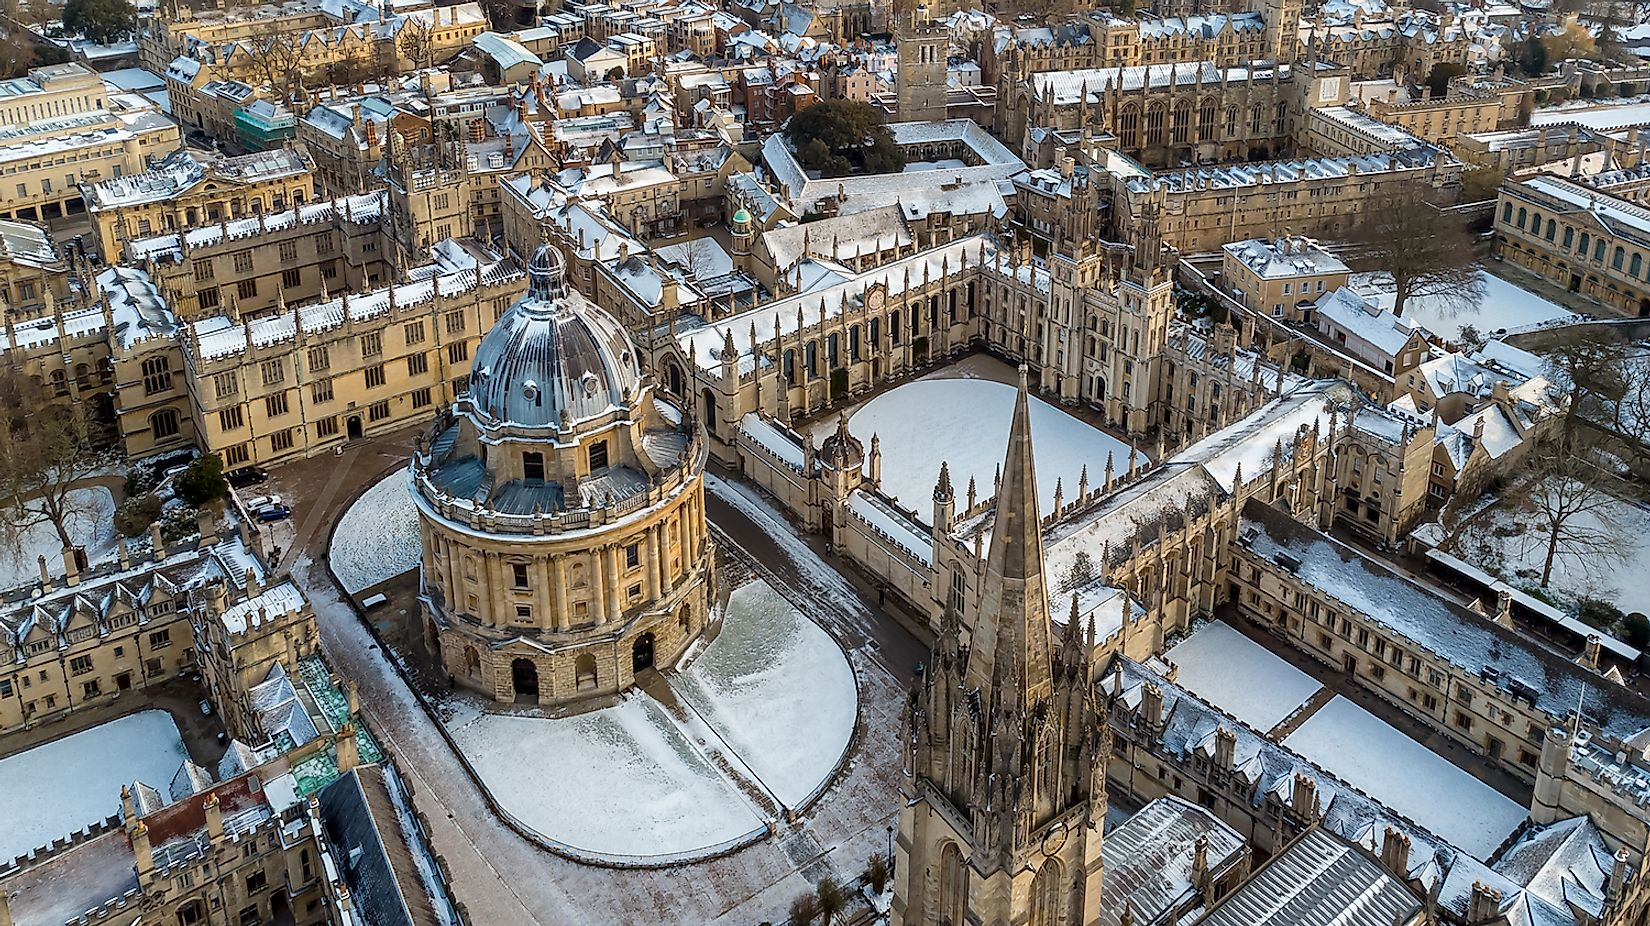 Aerial view of central Oxford, United Kingdom. Image credit: Alexey Fedorenko/Shutterstock.com